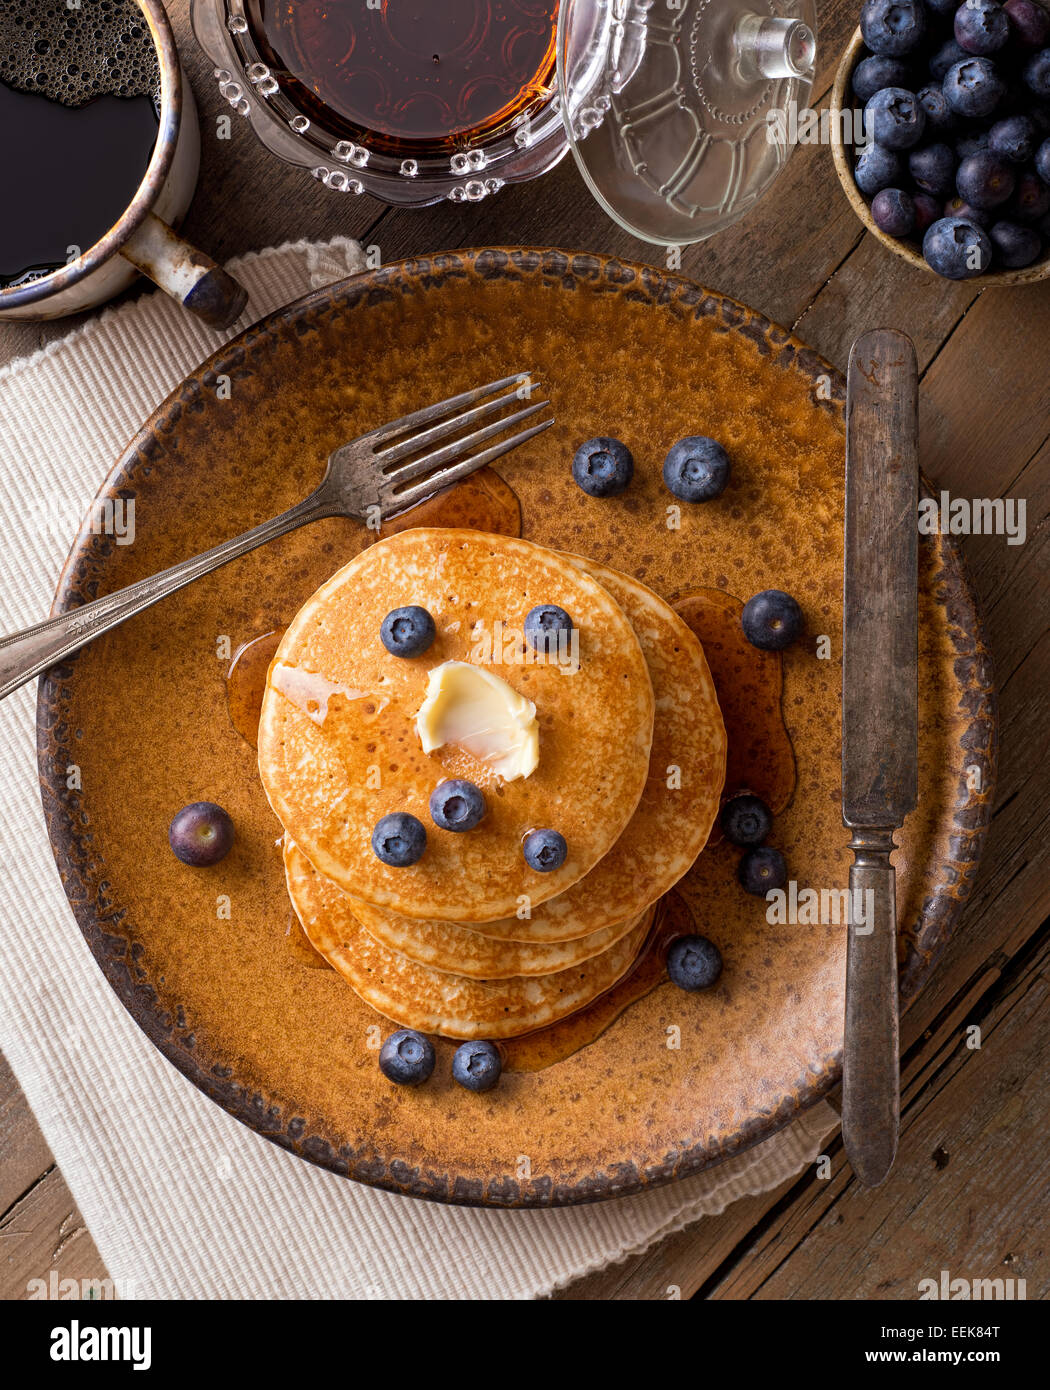 Pancakes with blueberries and maple syrup on a rustic tabletop. - Stock Image